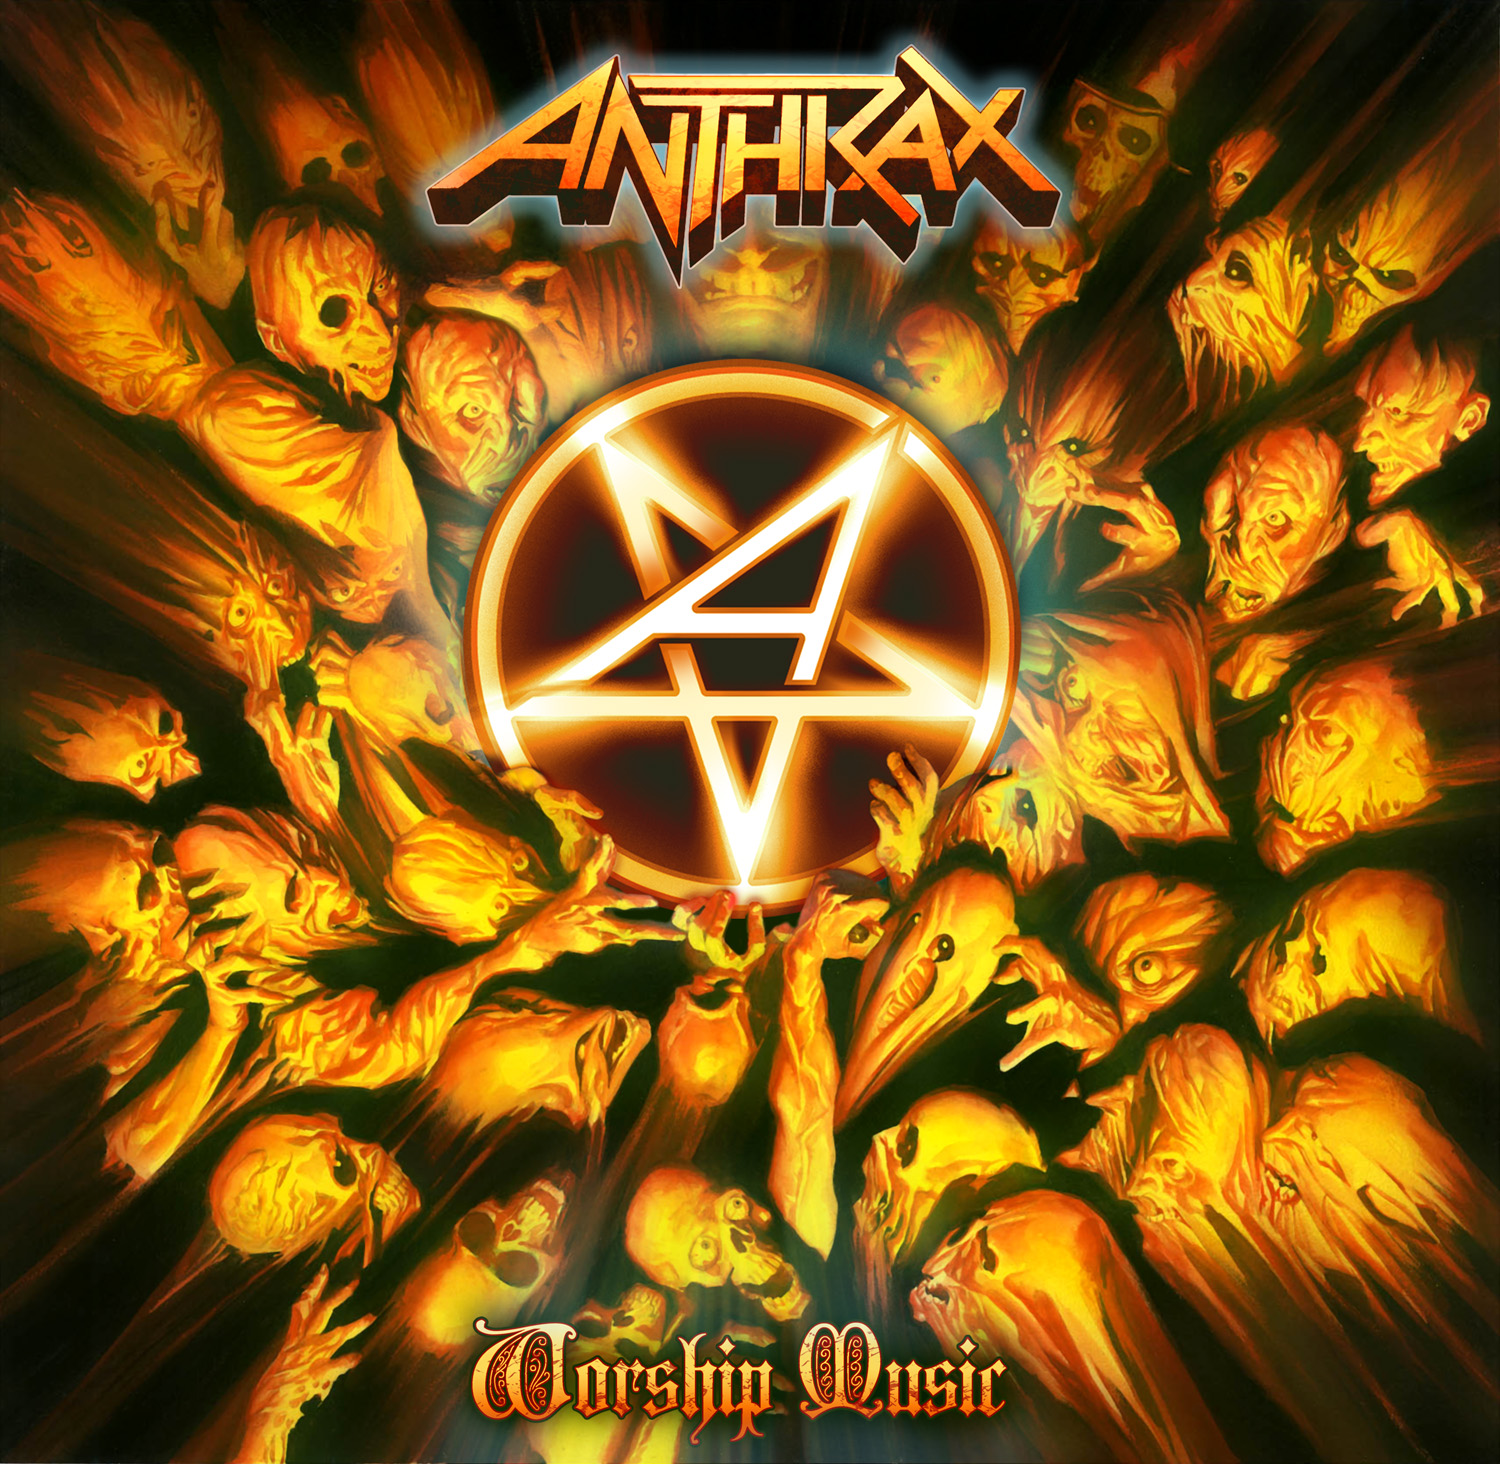 Anthrax Wallpapers 59 images in Collection Page 1 1500x1464